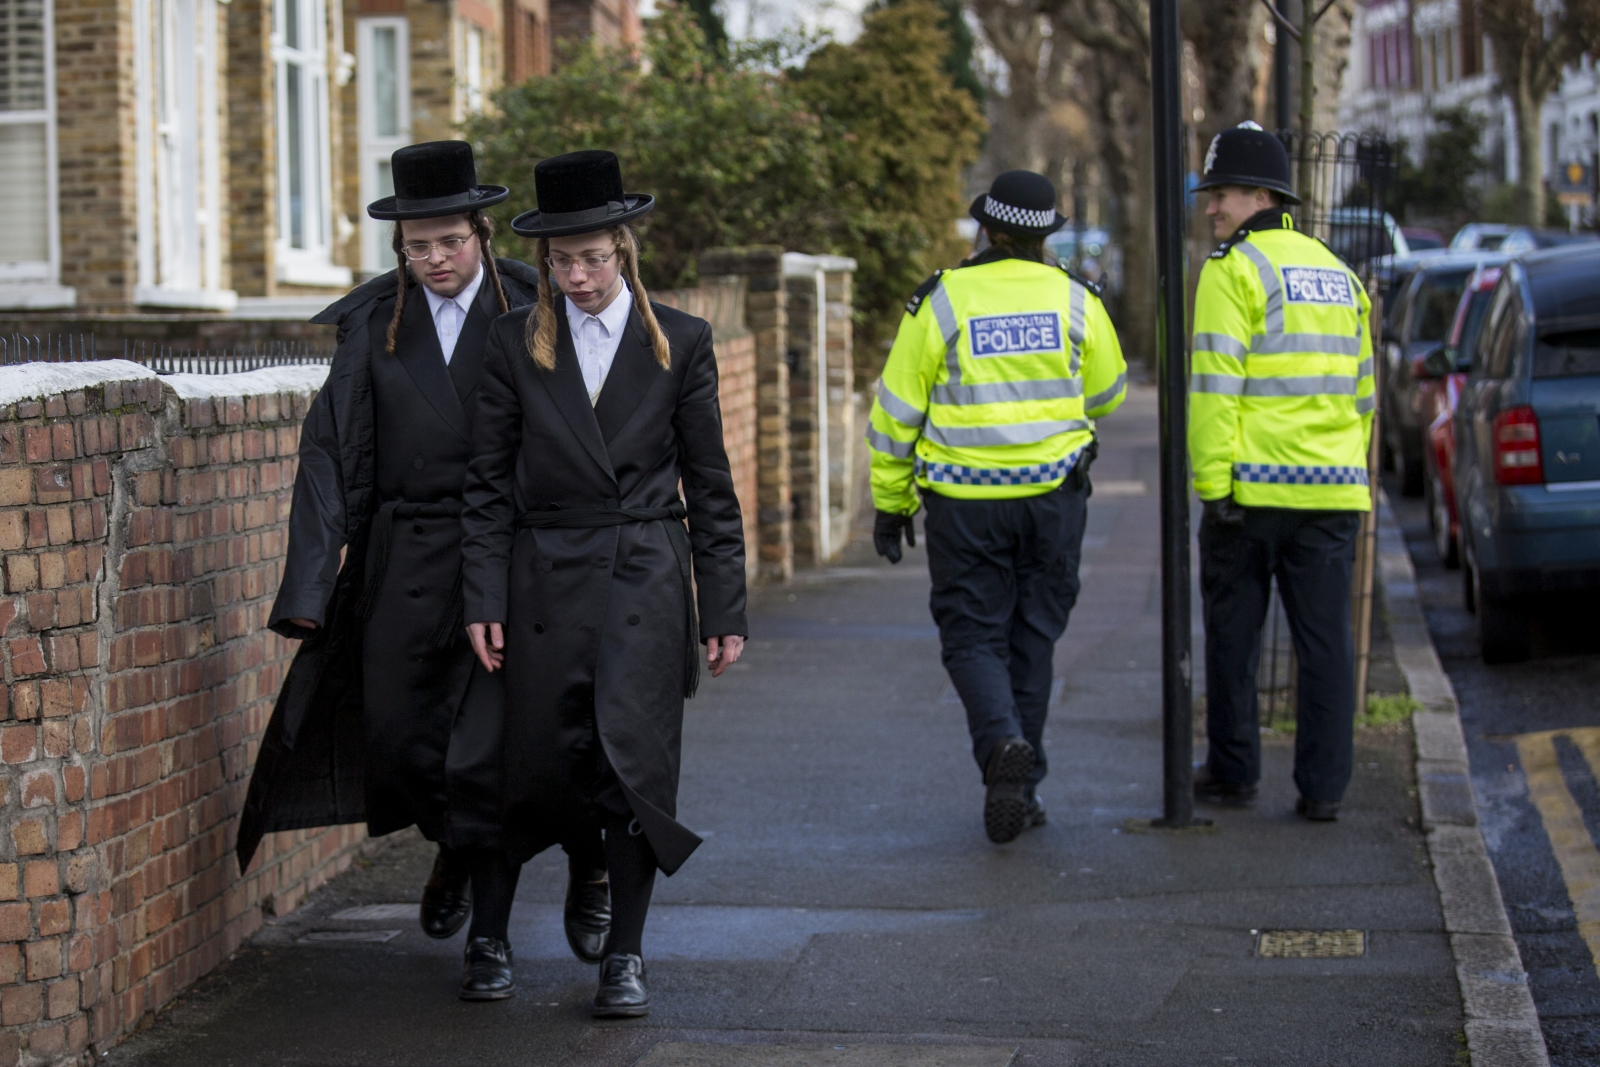 Jewish men walk in London